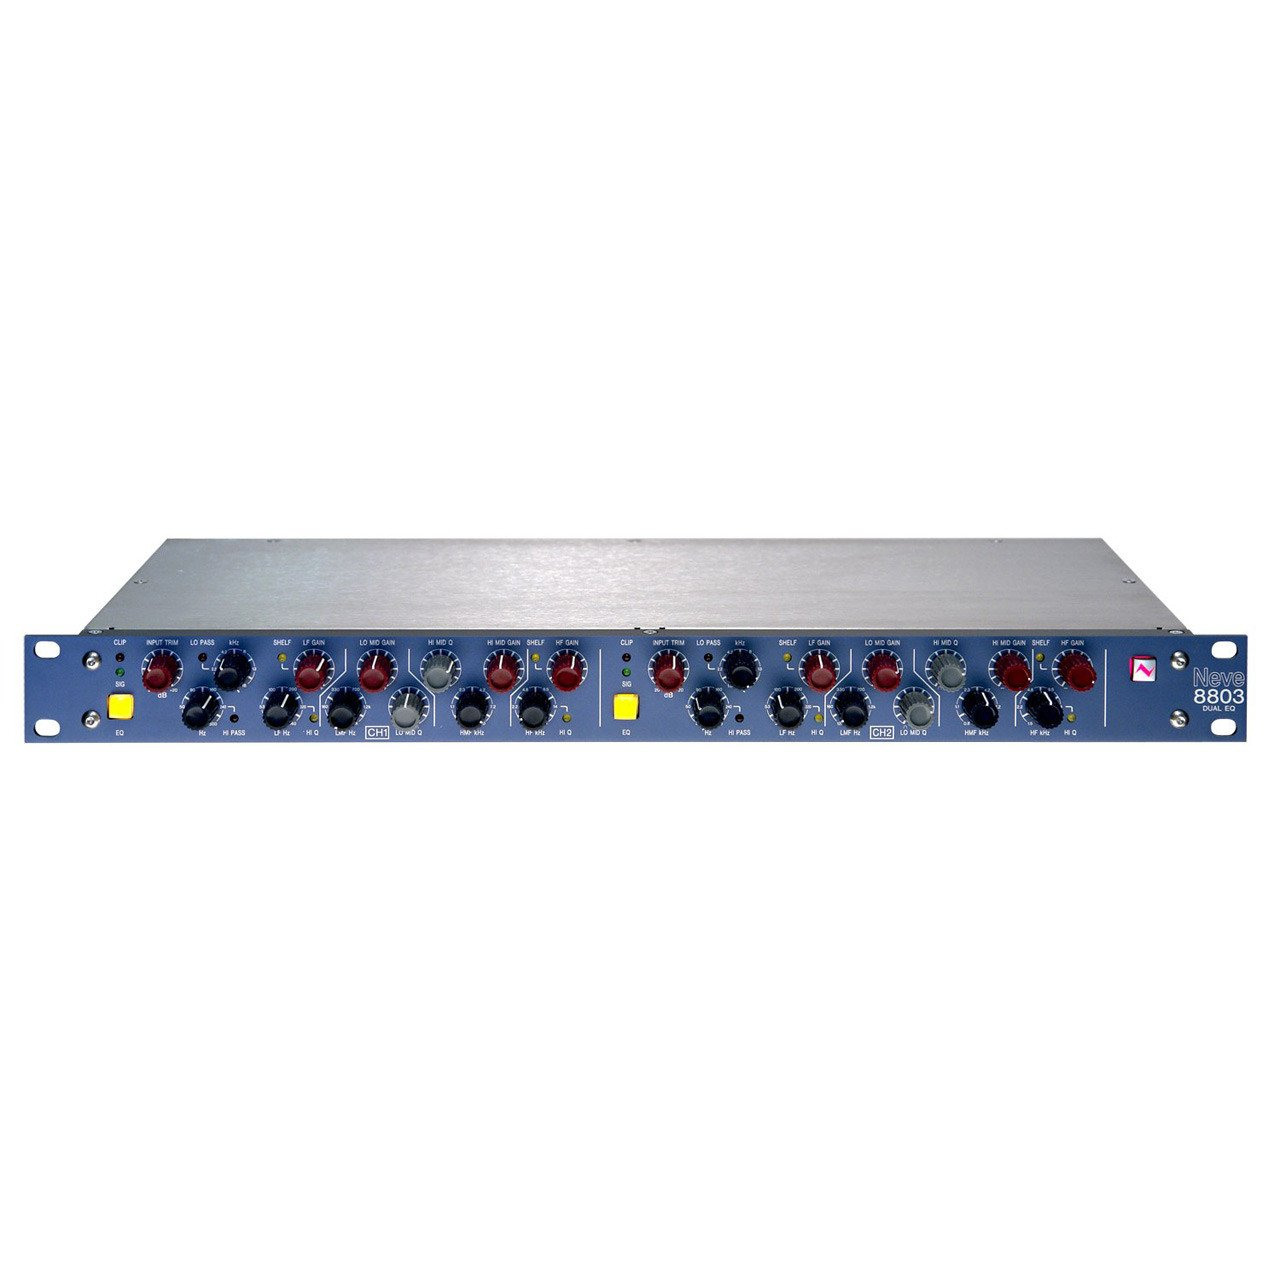 EQ - Neve AMS 8803 - Dual Channel Equalizer